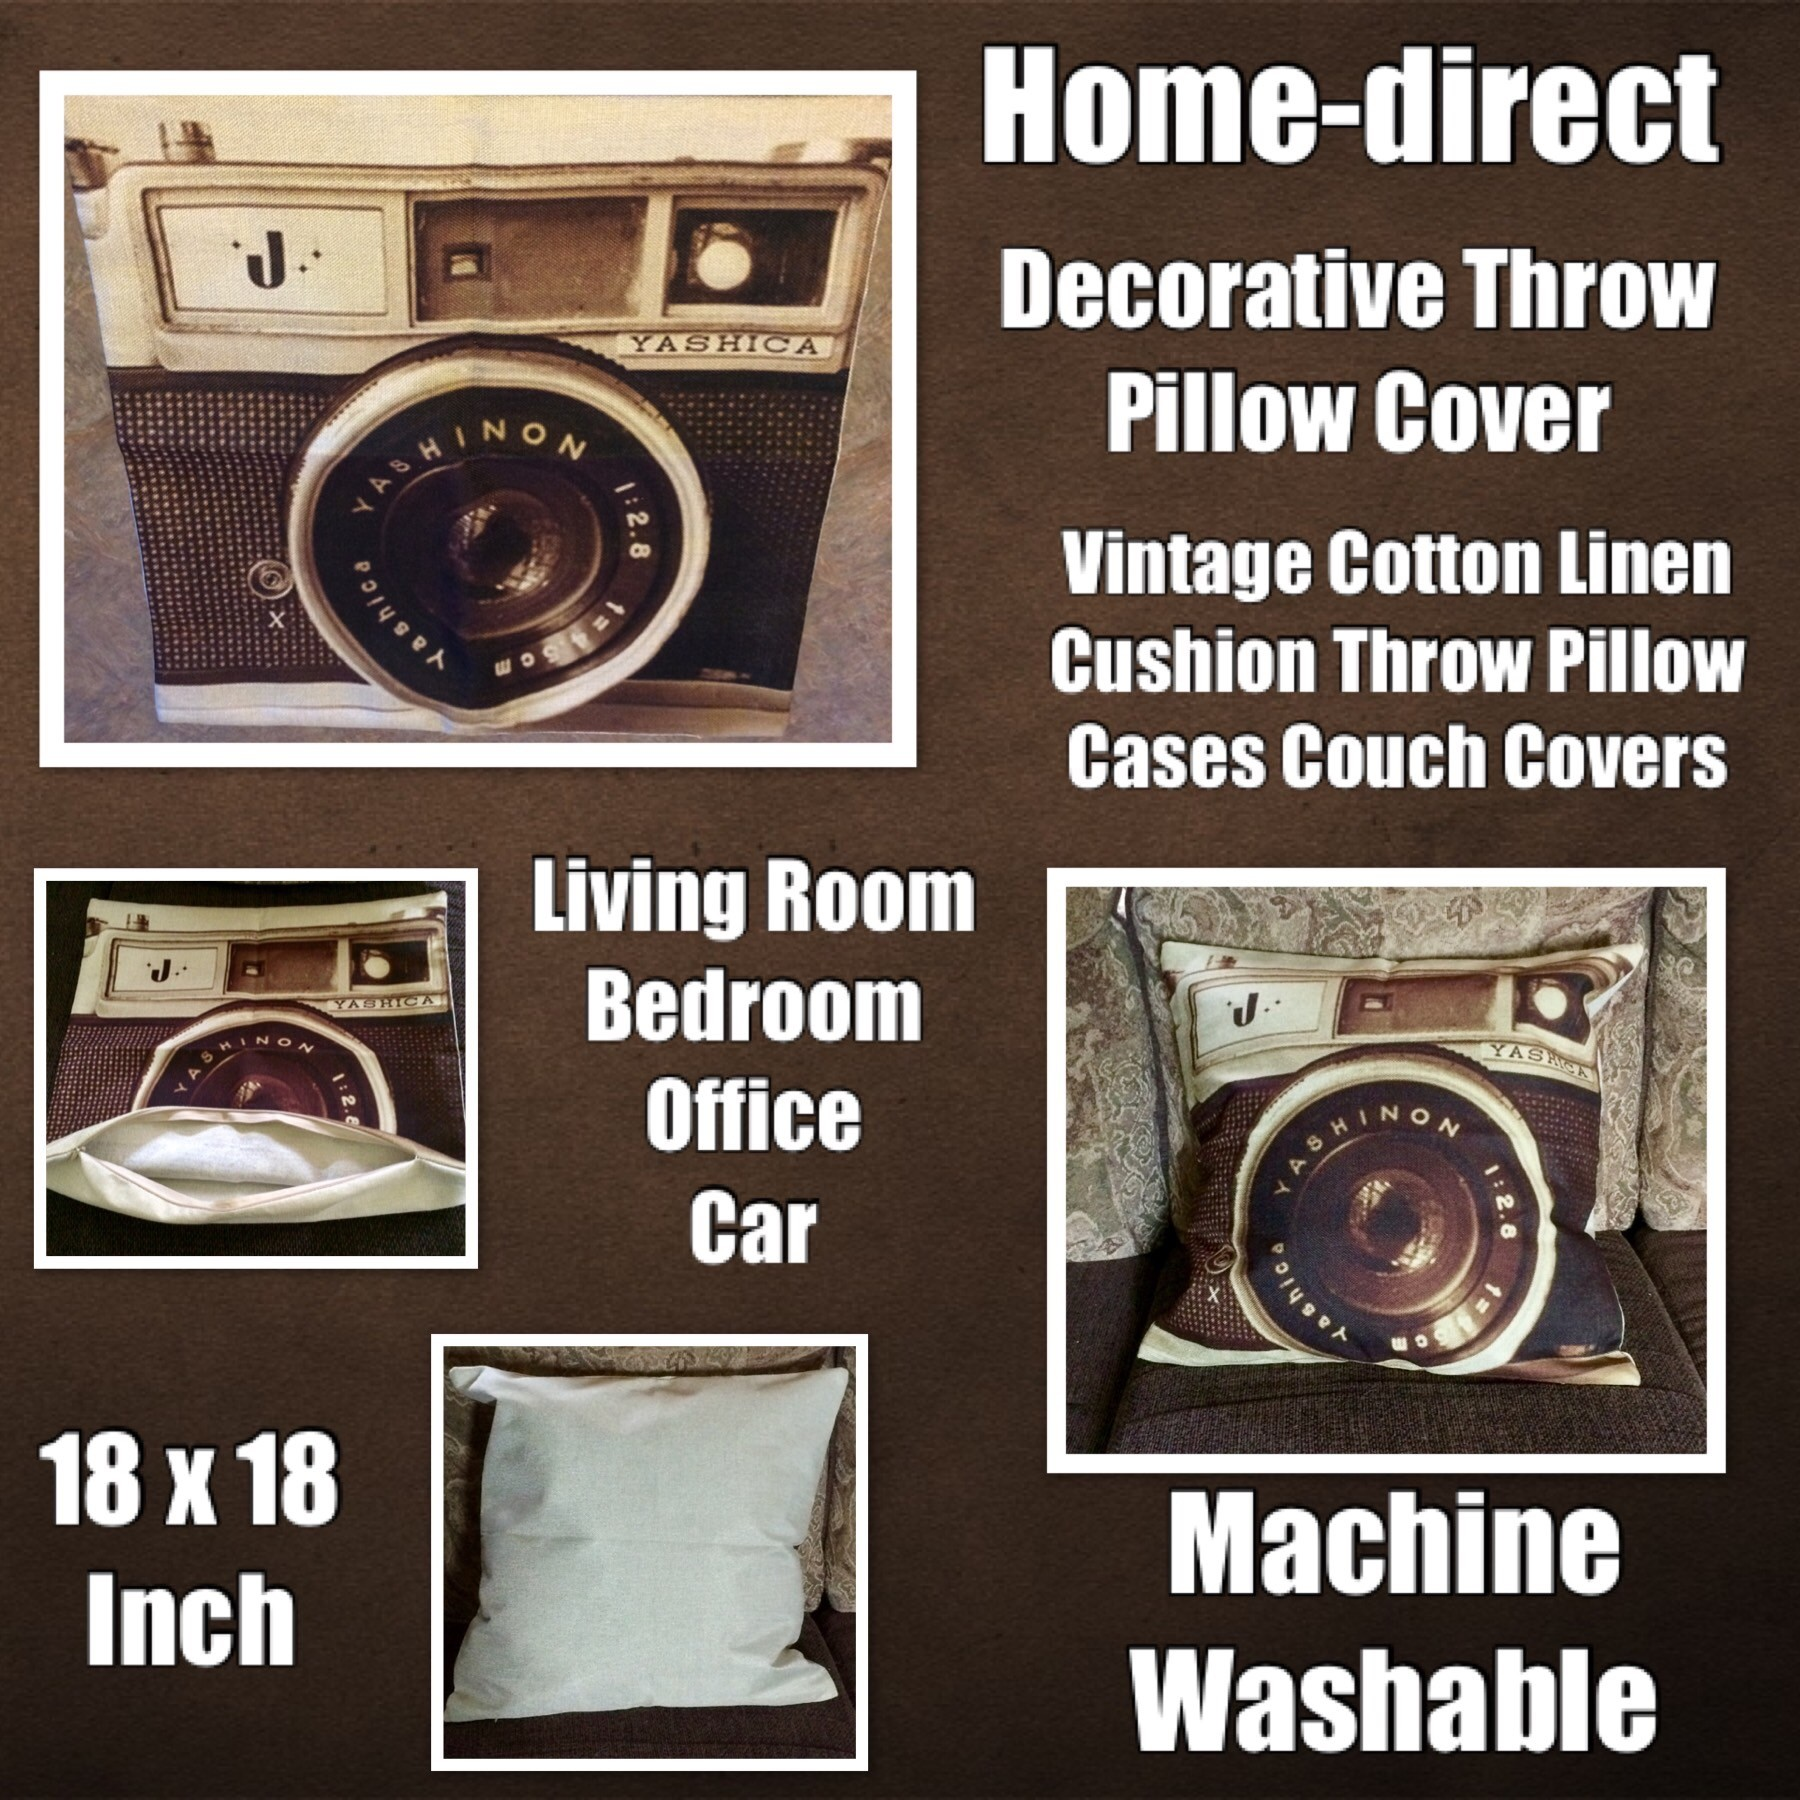 Home-direct Throw Pillow Cover, Decorative Pillowcase Vintage Cotton Linen Cushion Throw Pillow Cases Couch Covers Decoration For Living Room, Bedroom 18 x 18 Inch